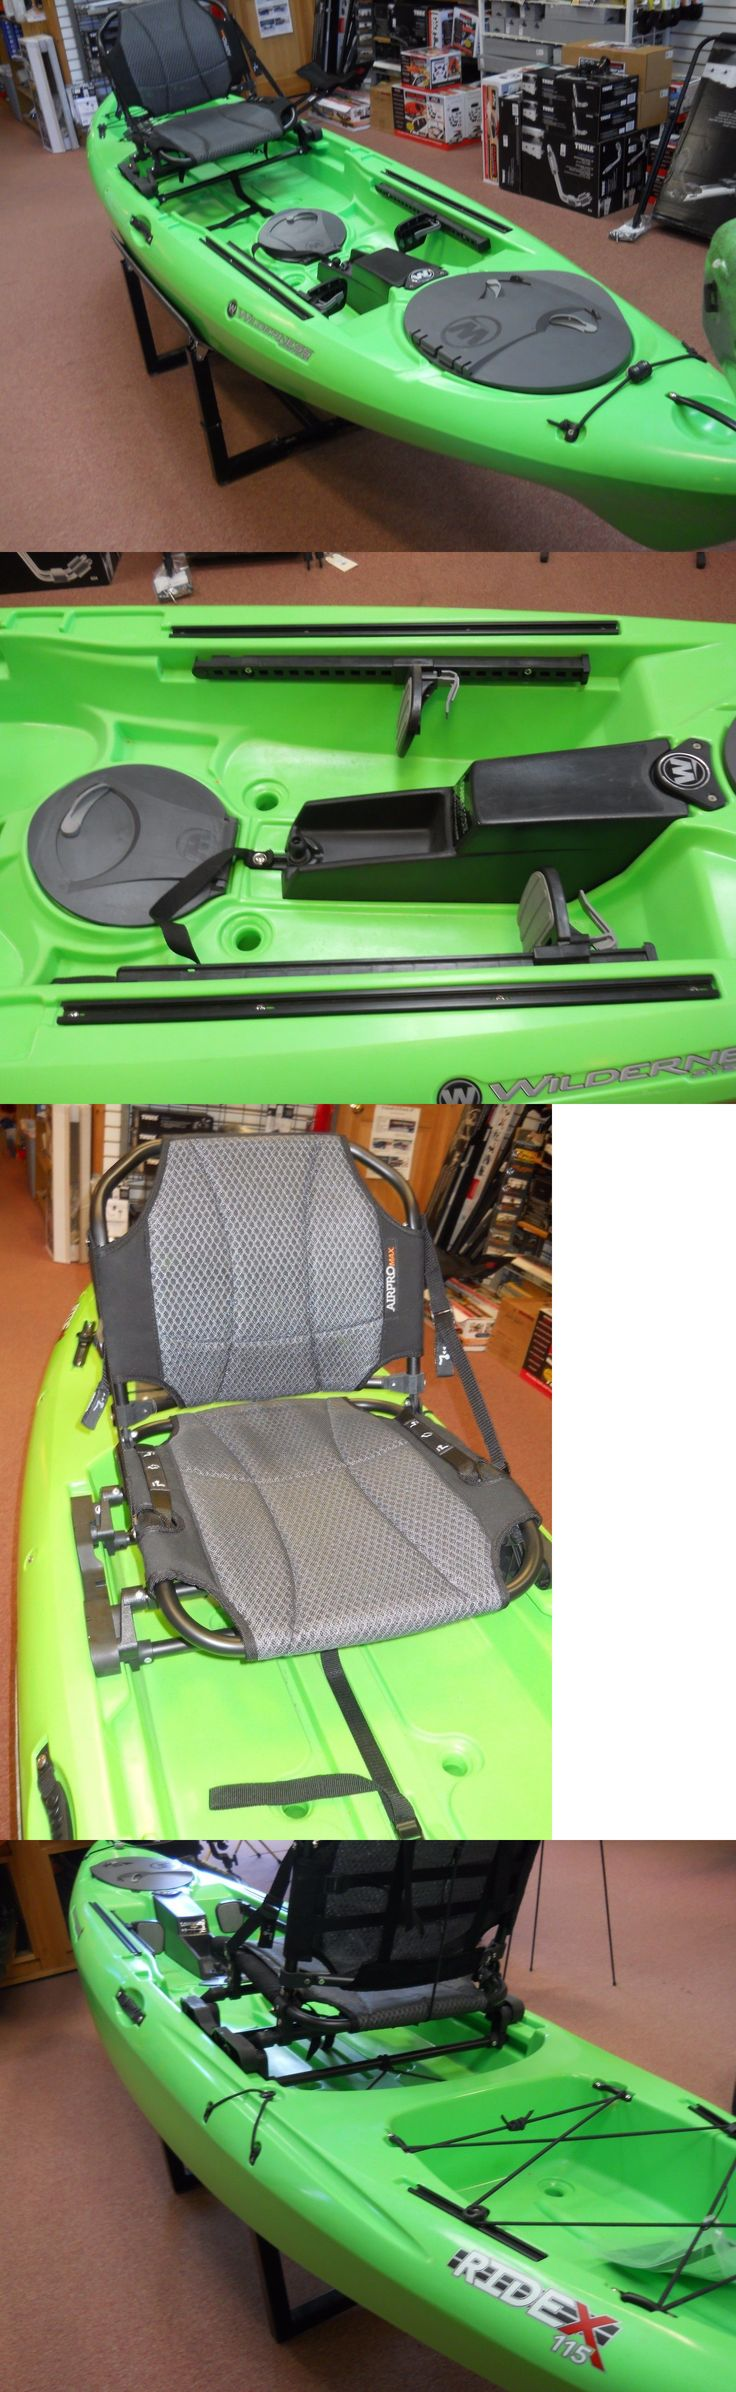 Kayaks 36122: Wilderness Systems Ride 115X 2015 Lime Green -> BUY IT NOW ONLY: $1087 on eBay!